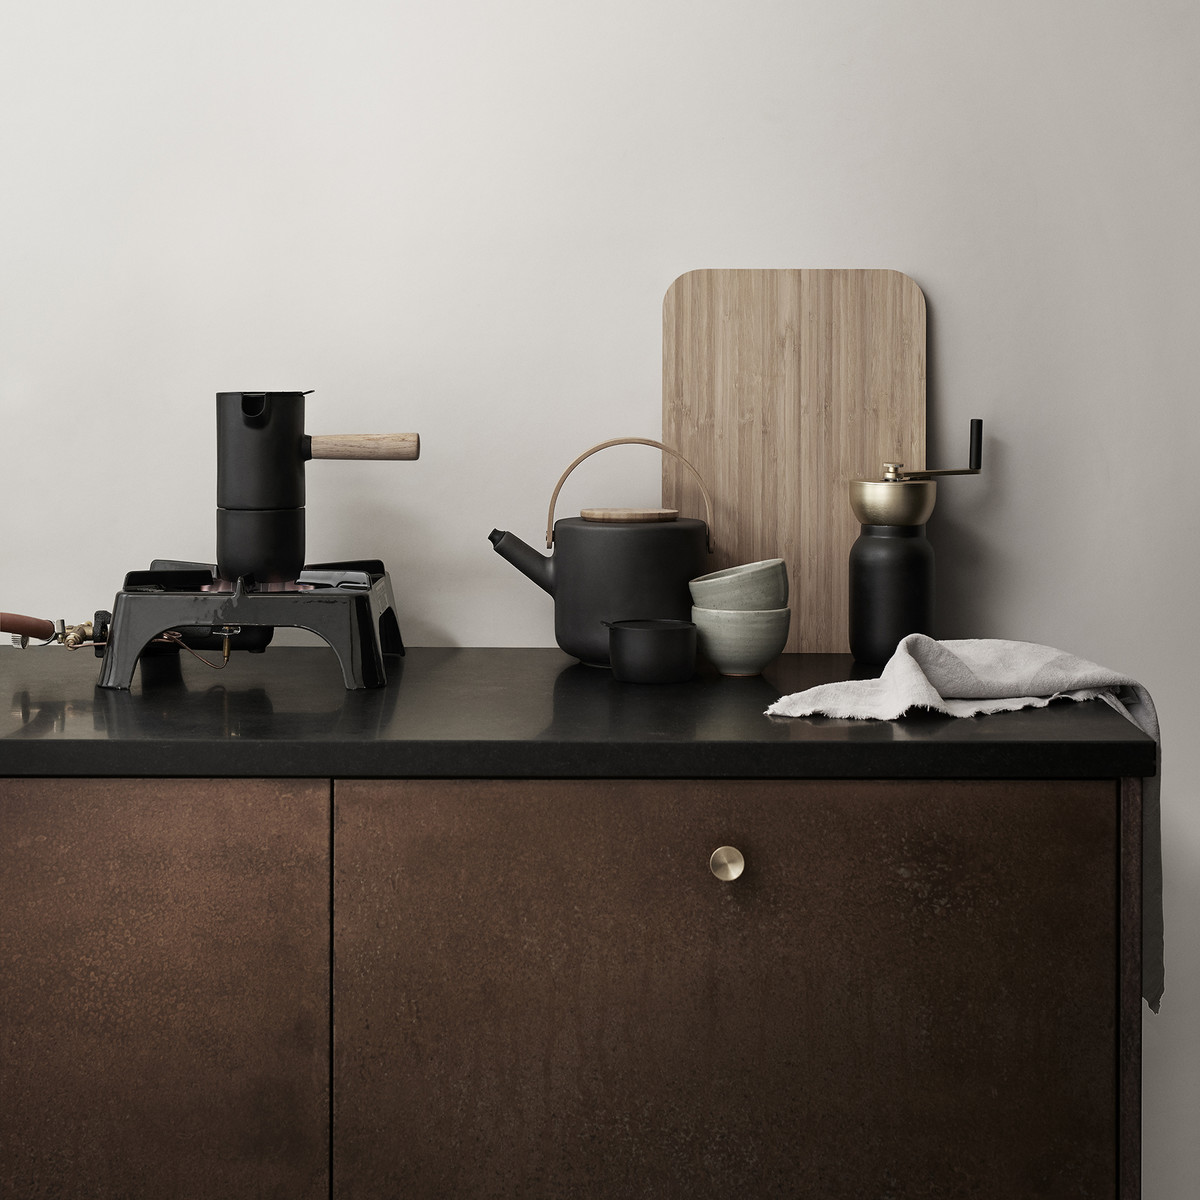 Stelton - Nordic Collar Espresso Brewer, Theo teapot, Collar coffee grinder, collar sugar bowl, theo tray